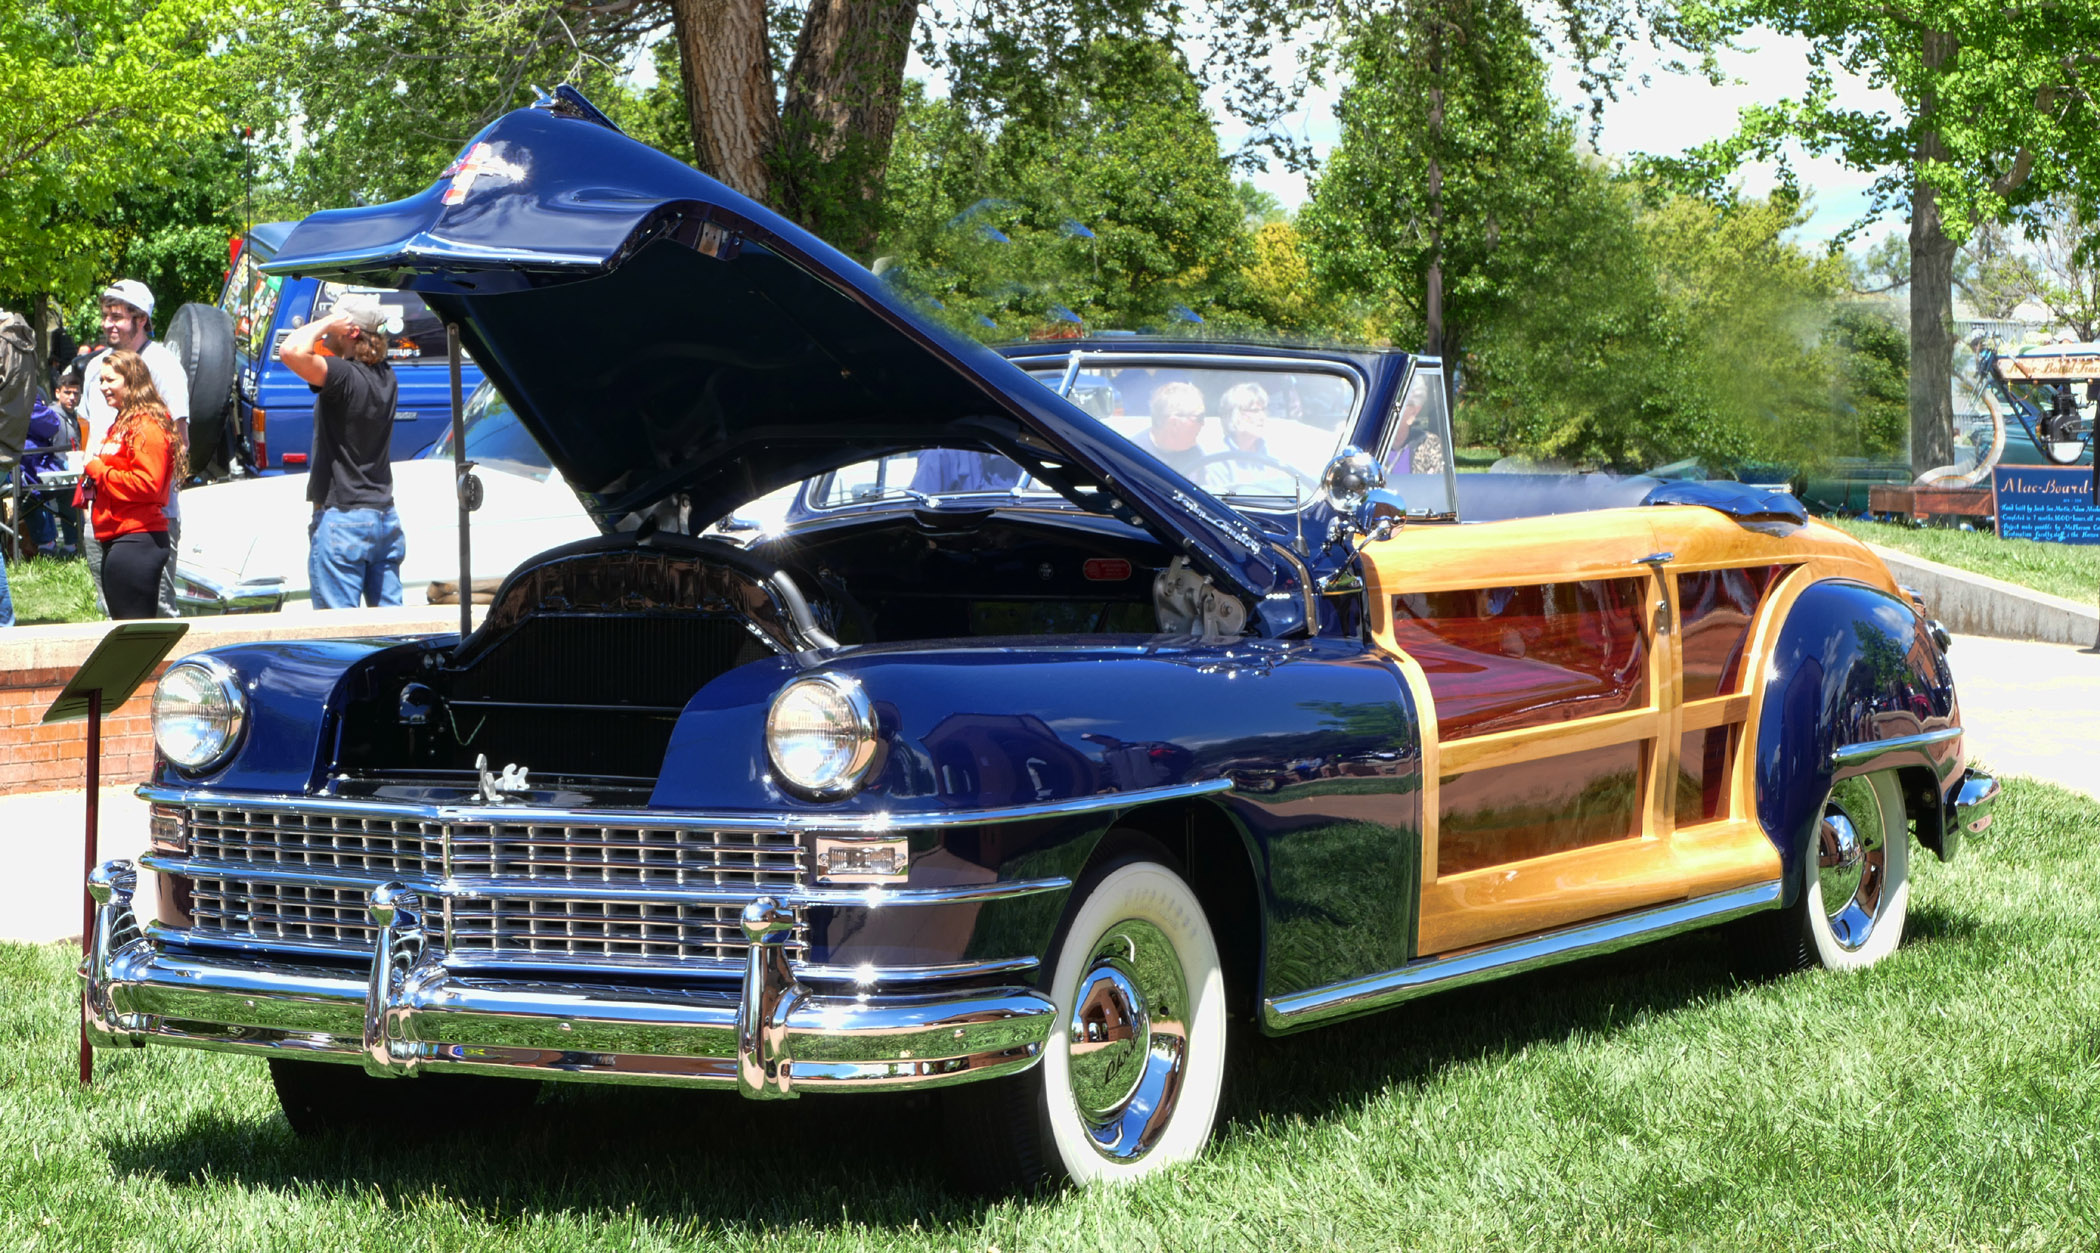 CHRYSLER-TOWN-AND-COUNTRY-THREE-QUARTER